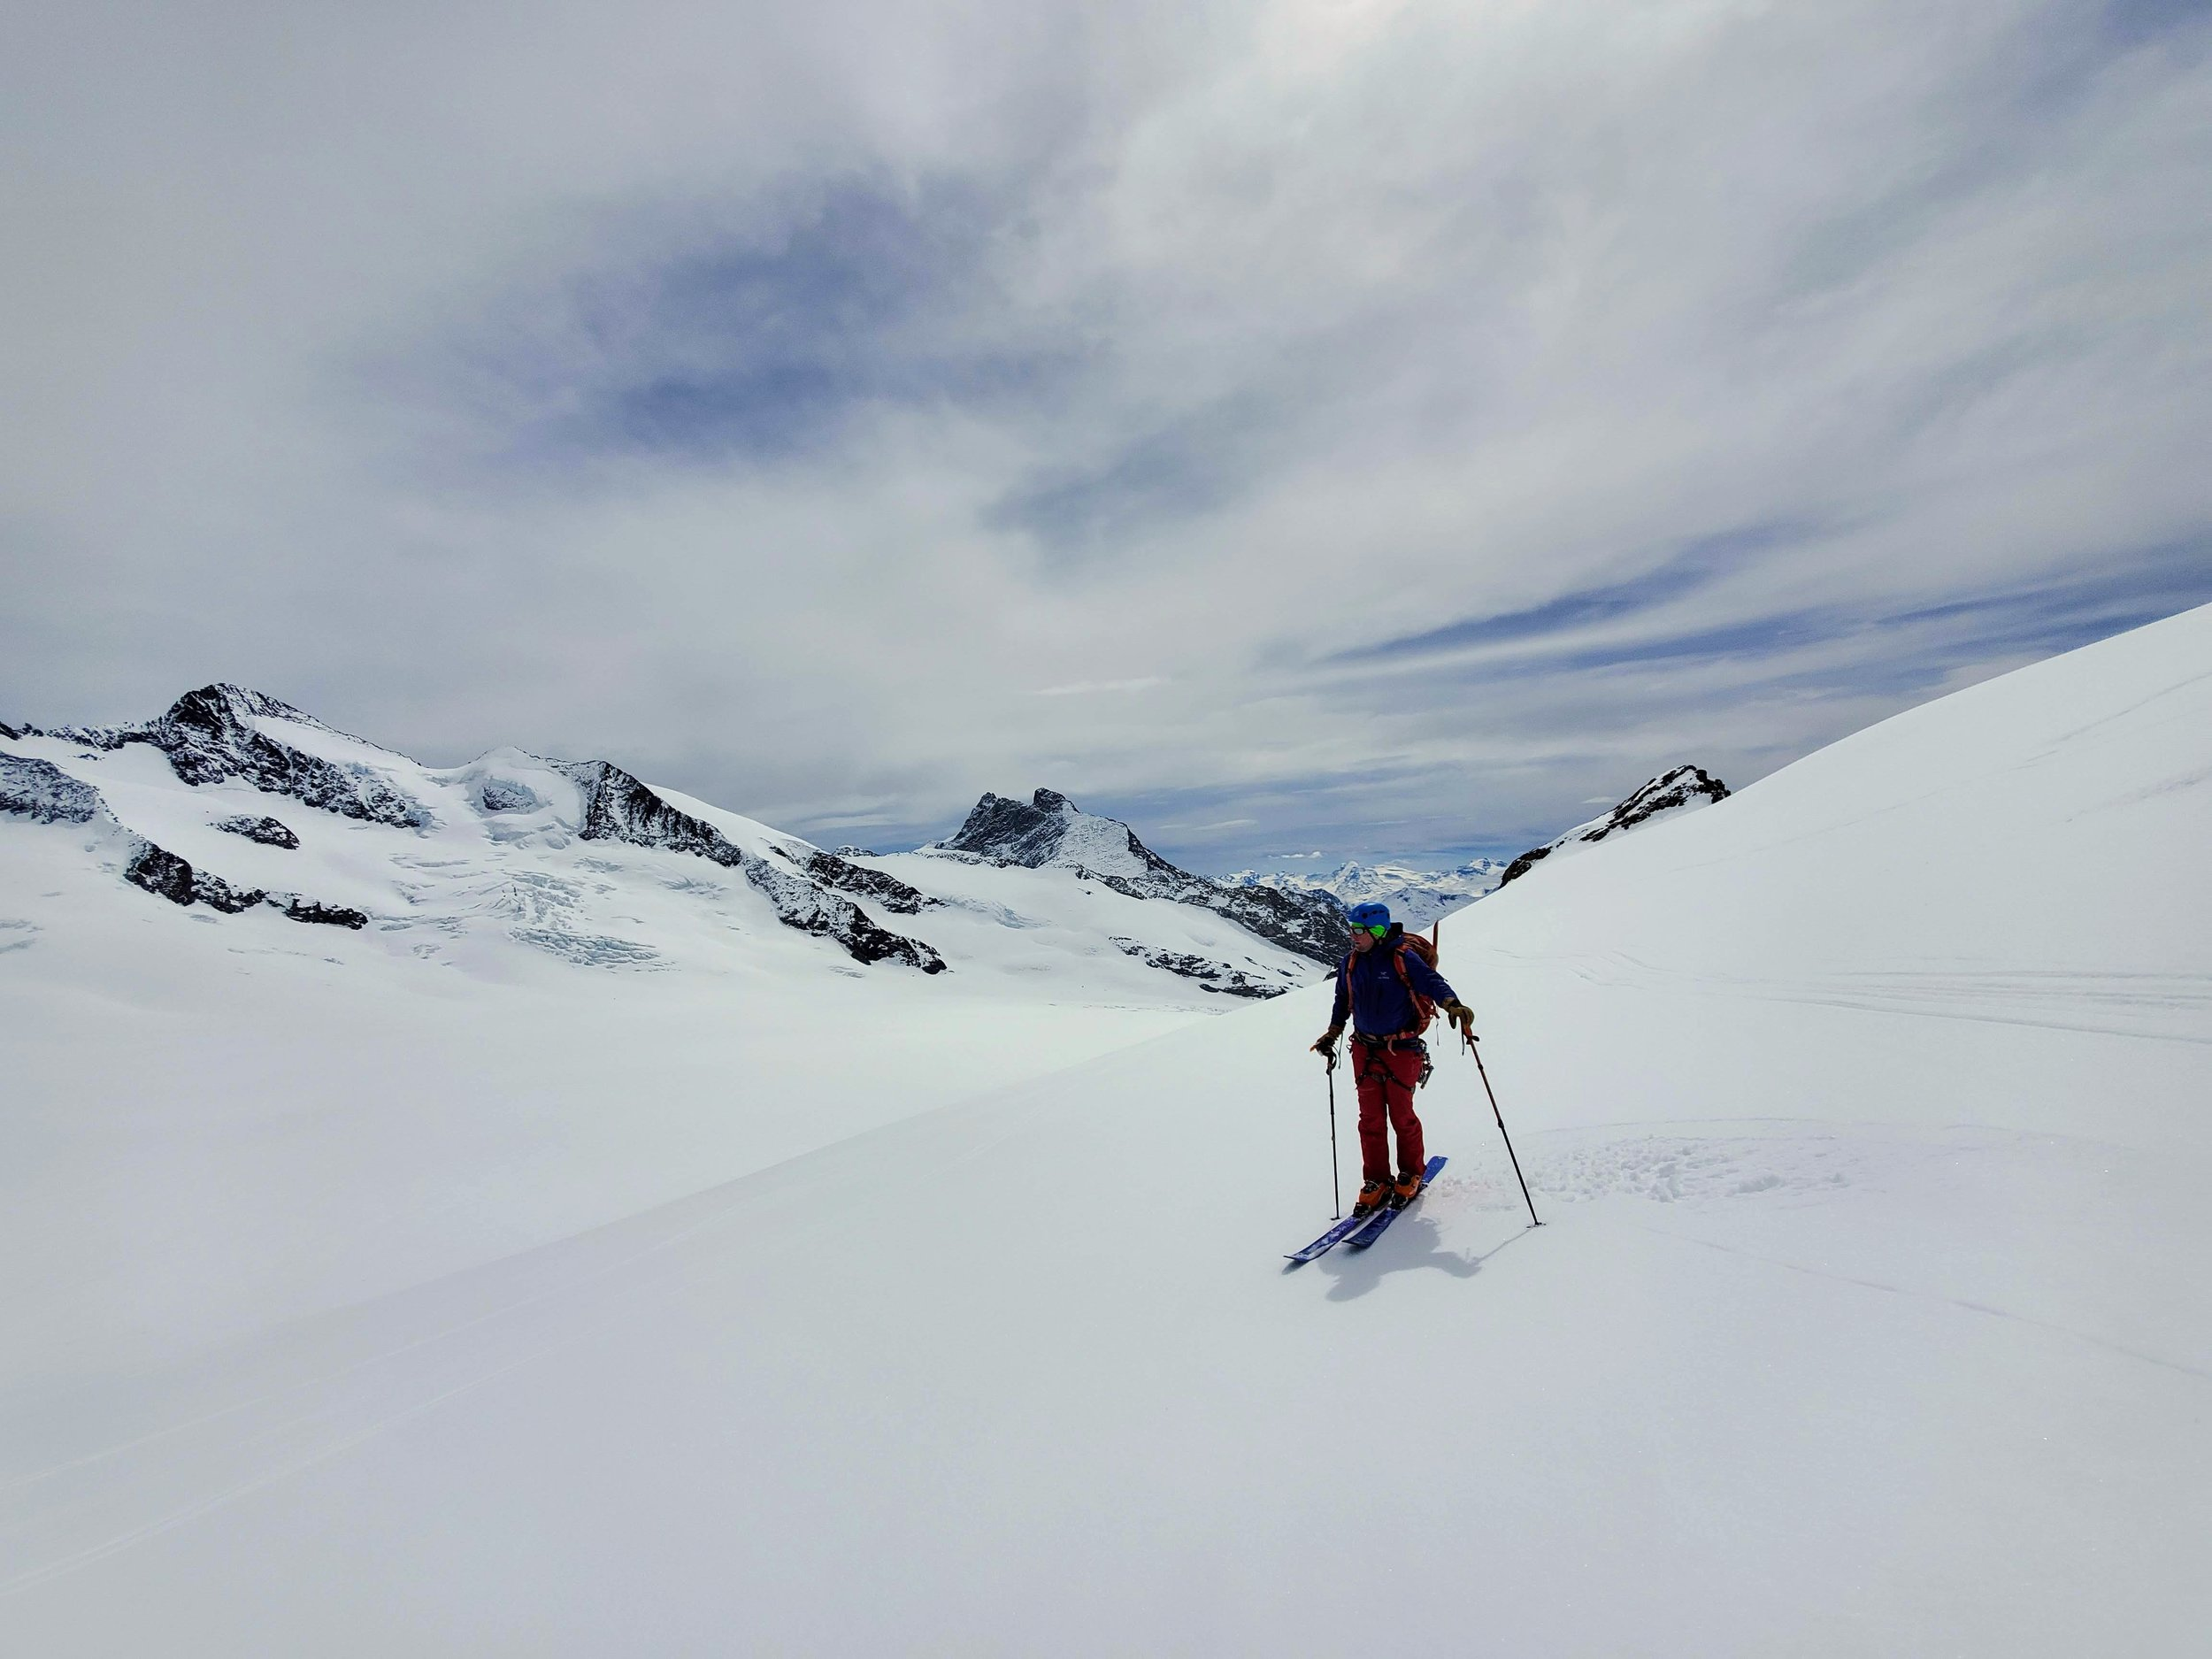 Sean partway down the Trugberg, enjoying wonderful corn skiing and world-class views.